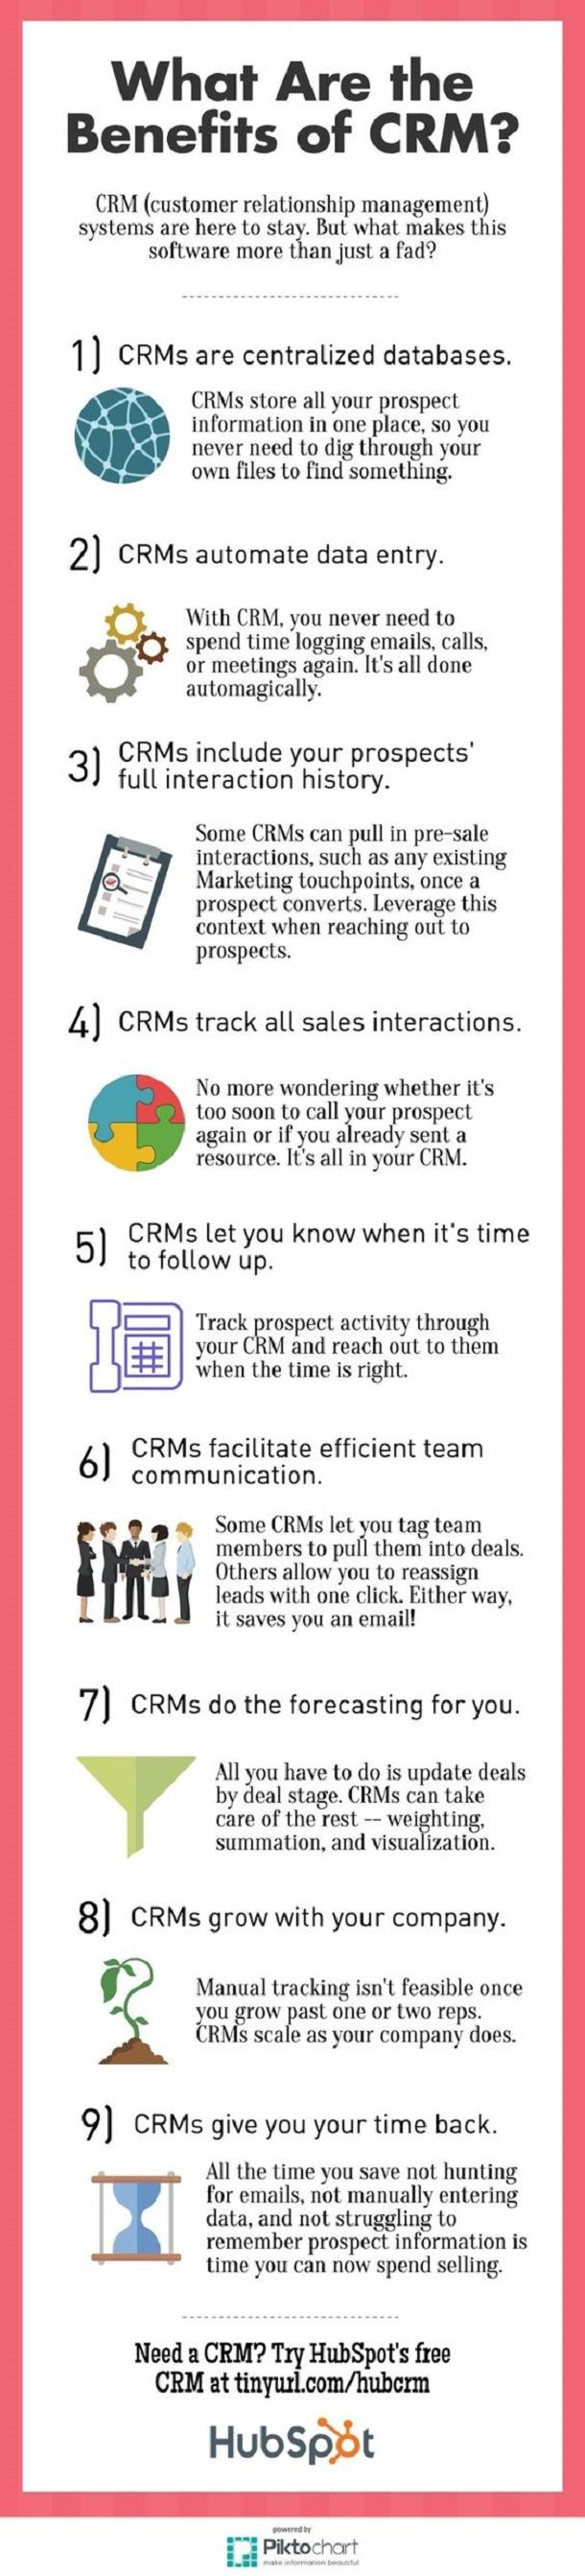 Relationships matter: Why you need a CRM system (Infographic)